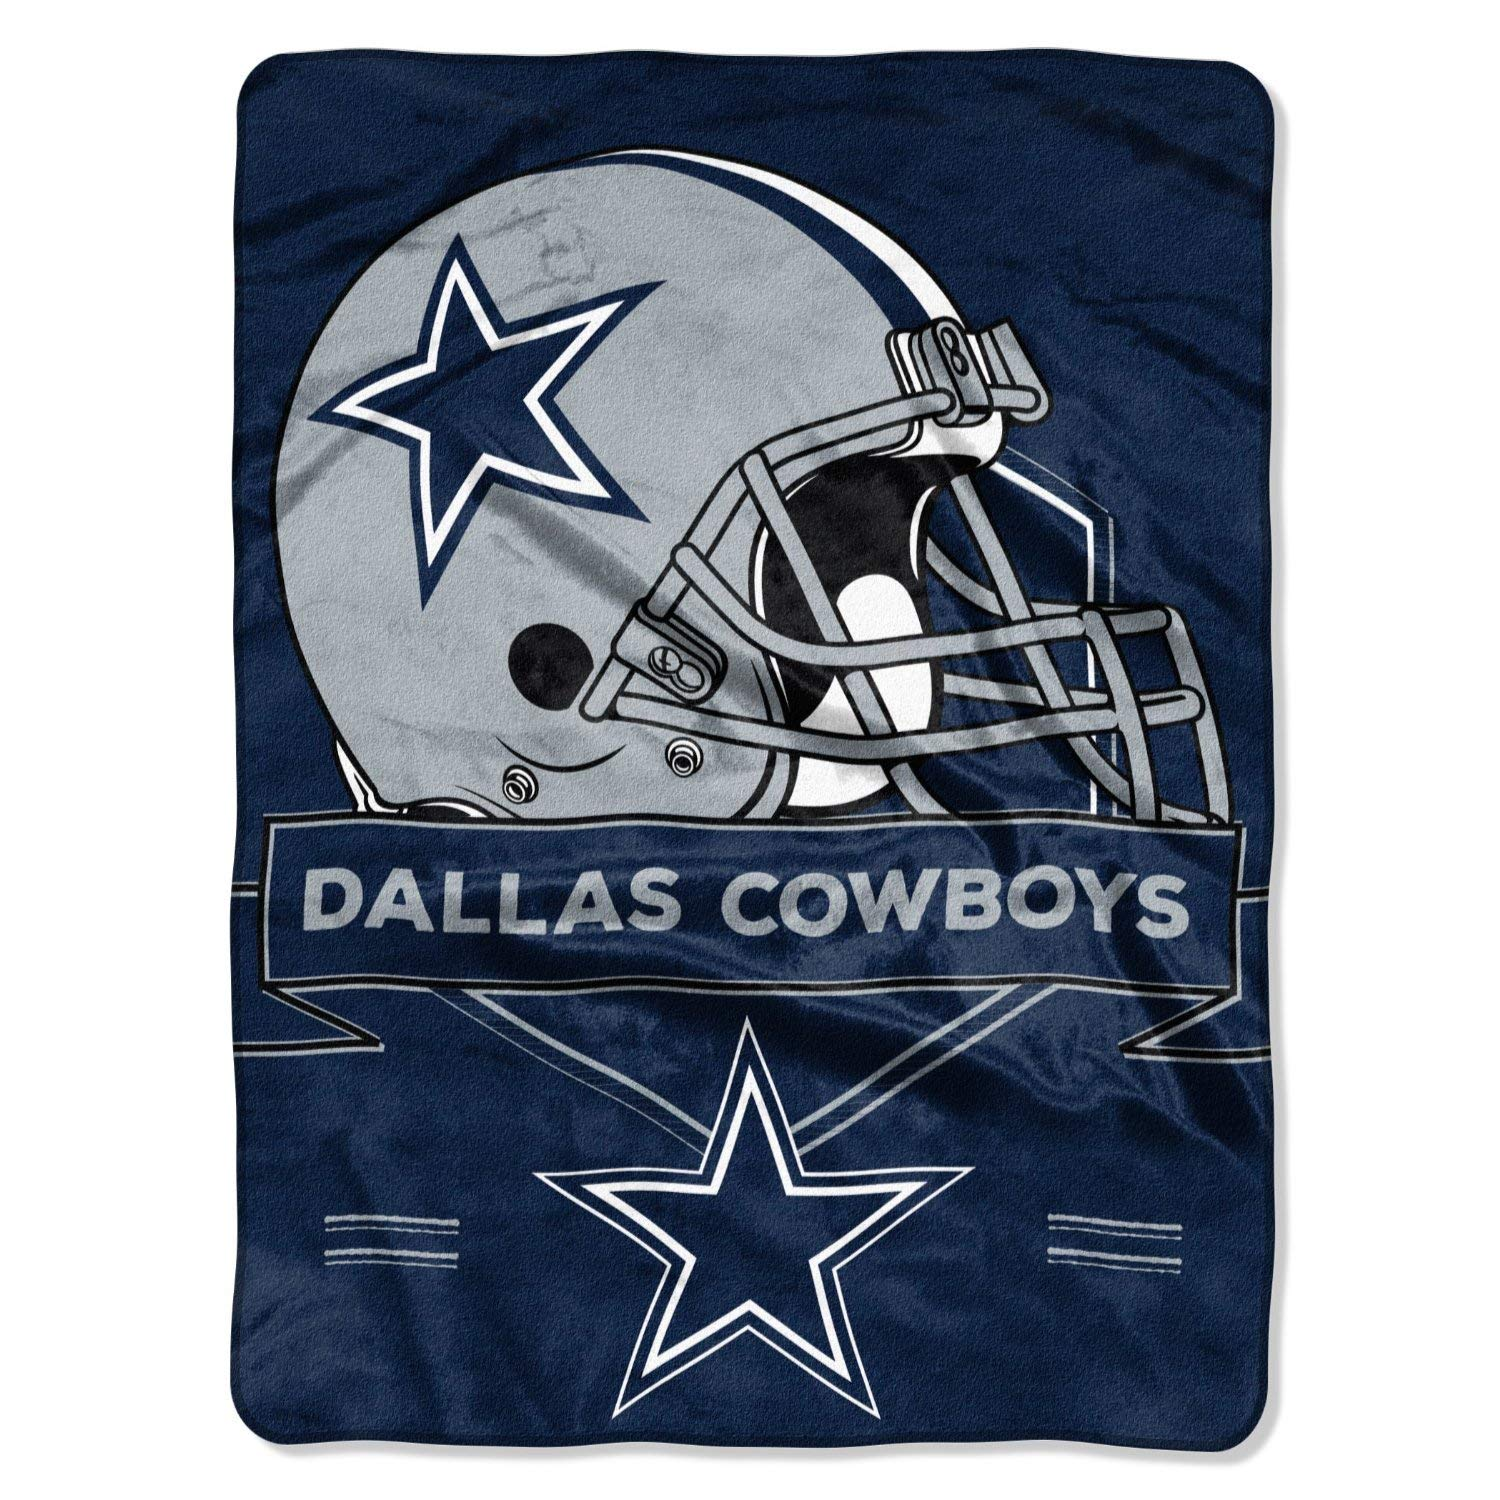 The Northwest Company NFL Dallas Cowboys Prestige Raschel Throw Blanket, 60'' x 80''